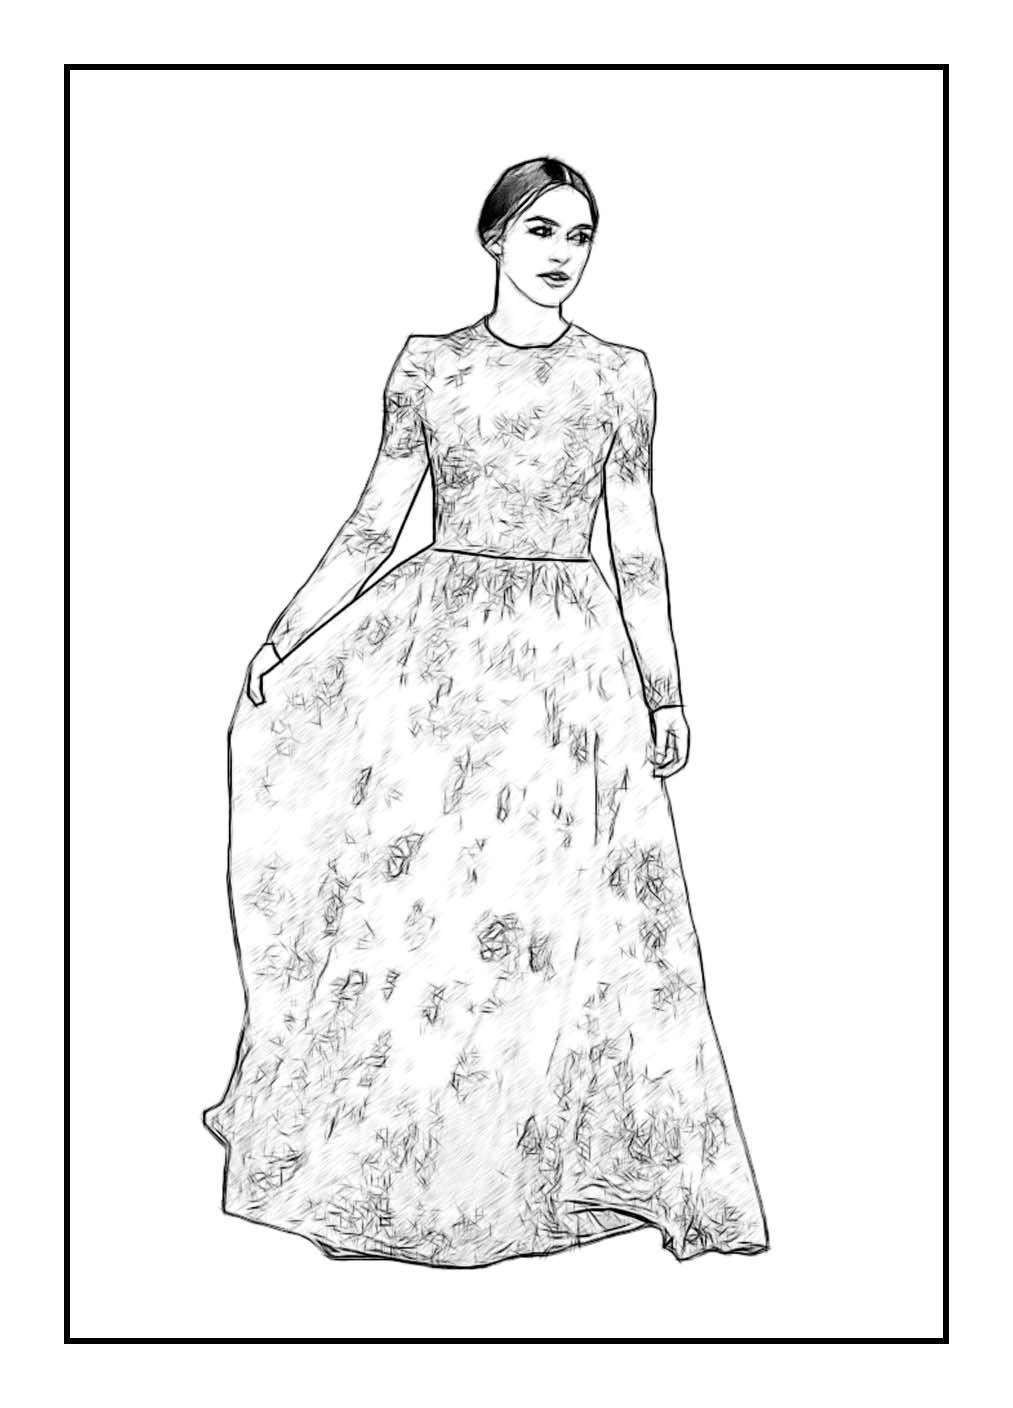 keira knightley celebrity coloring page by dan newburn